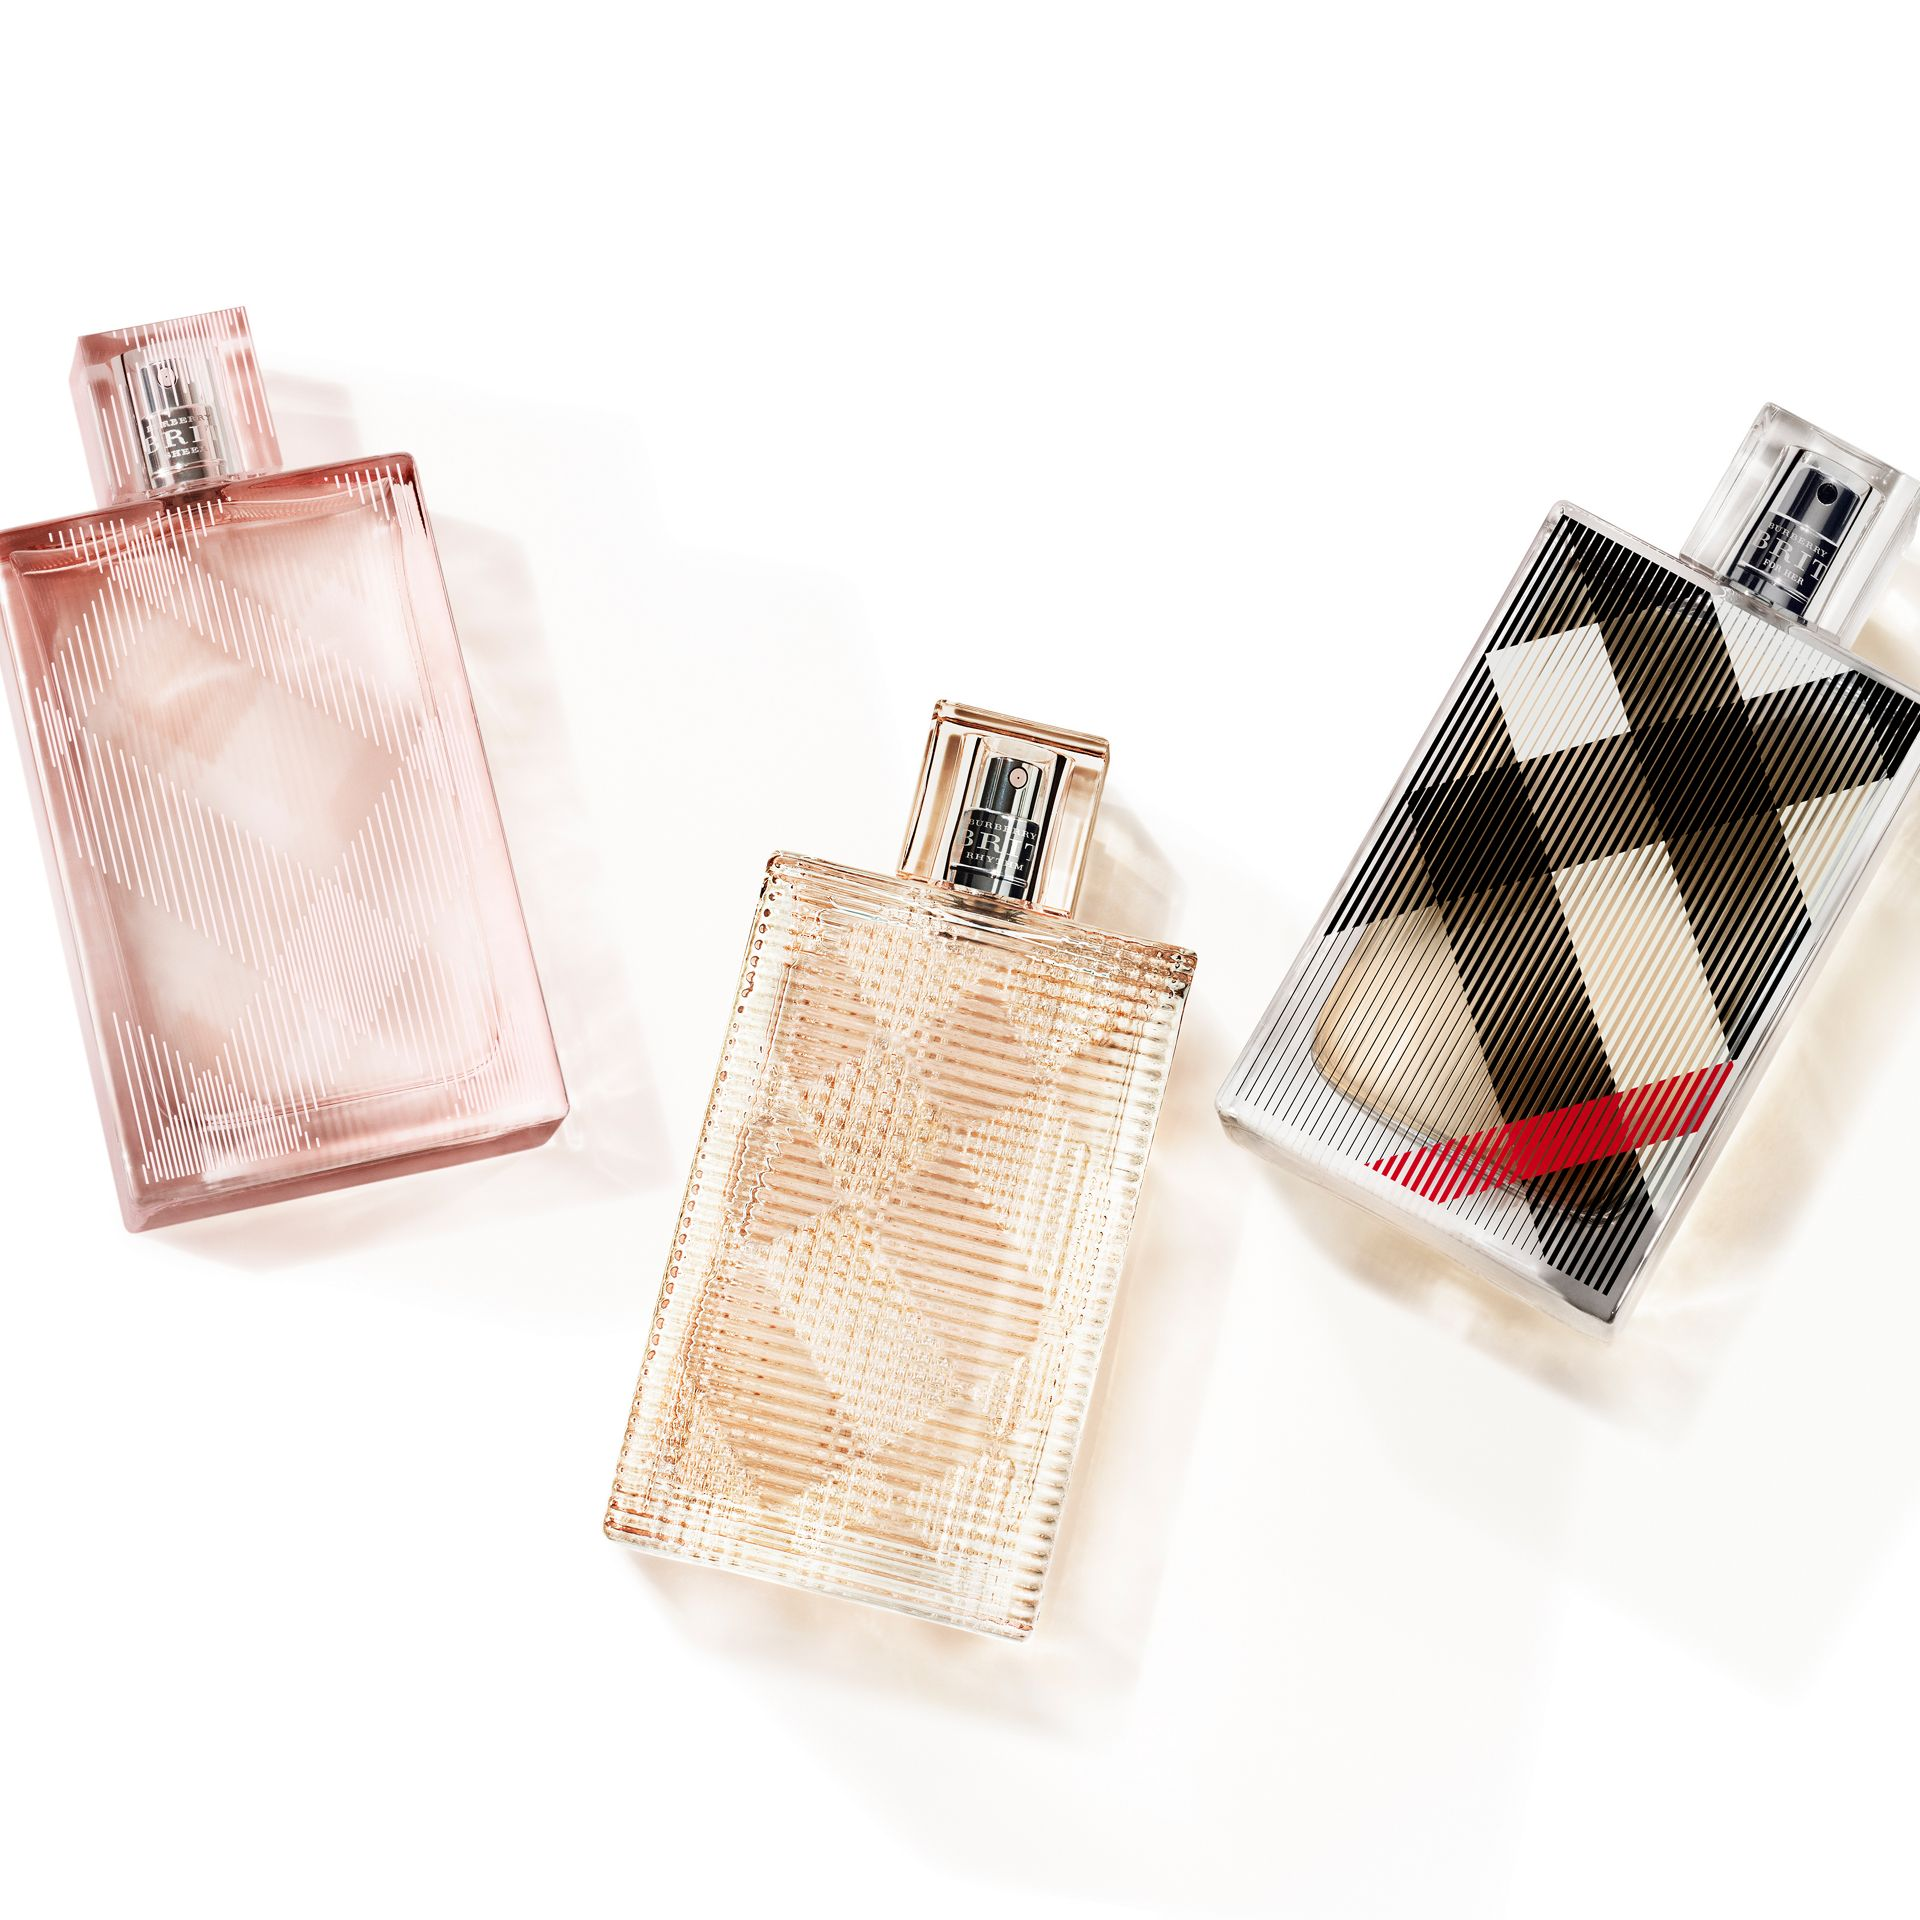 Burberry Brit For Her Eau de Toilette 50ml - Women | Burberry - gallery image 3